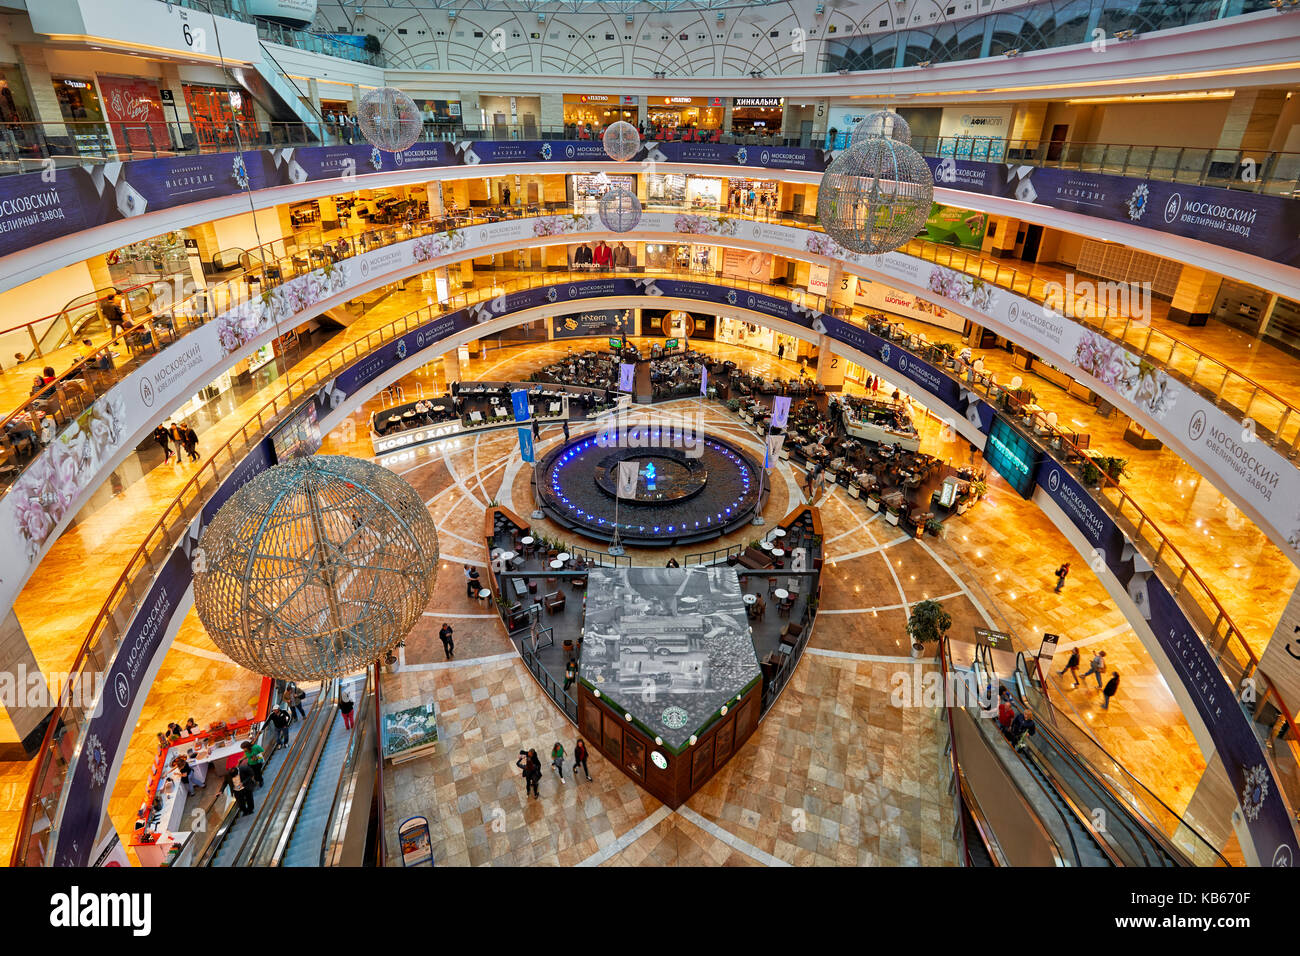 Interior of the Afimall City, upscale shopping mall at the Moscow International Business Centre (MIBC). Moscow, - Stock Image